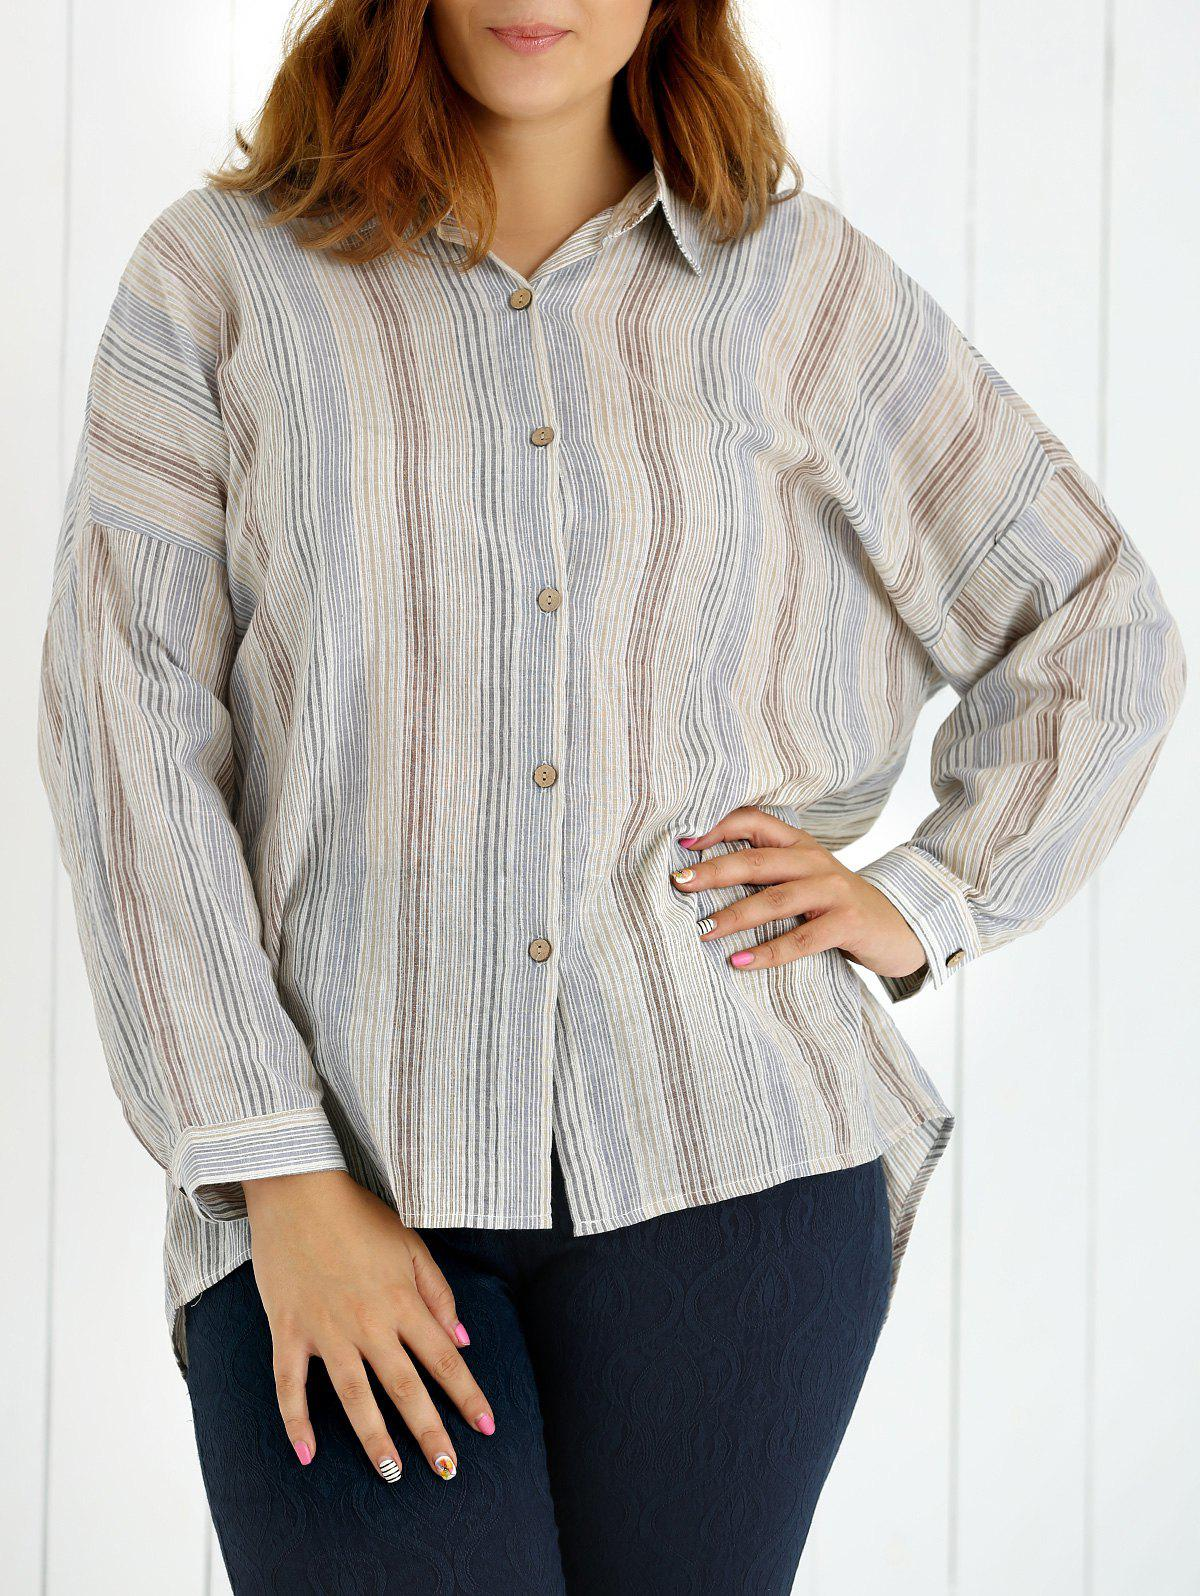 Chic Oversized Colored Striped Long Sleeves Shirt